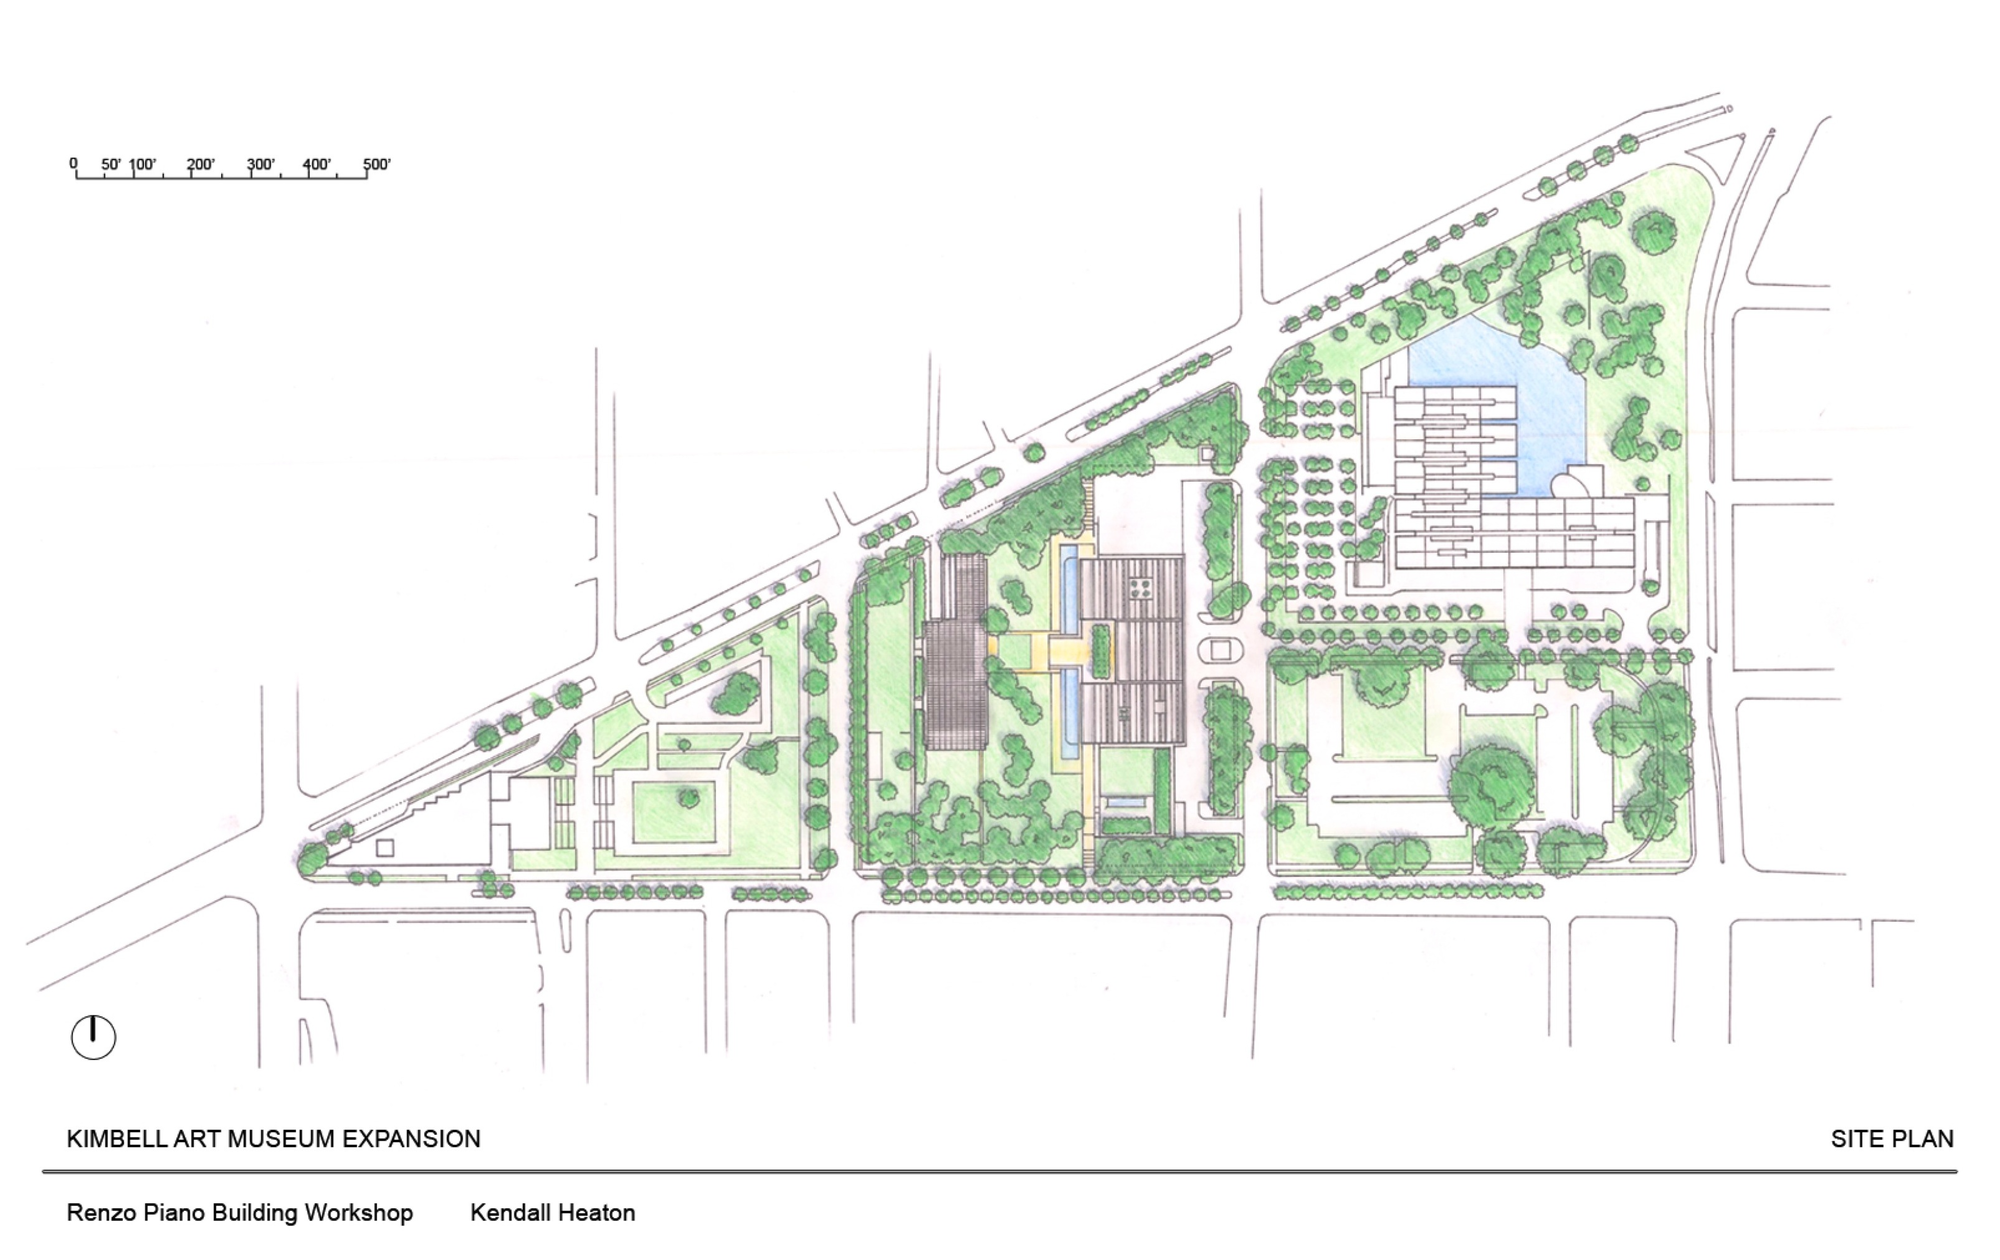 Seeming inevitability reconsidering renzo piano s for Site plan dimensions